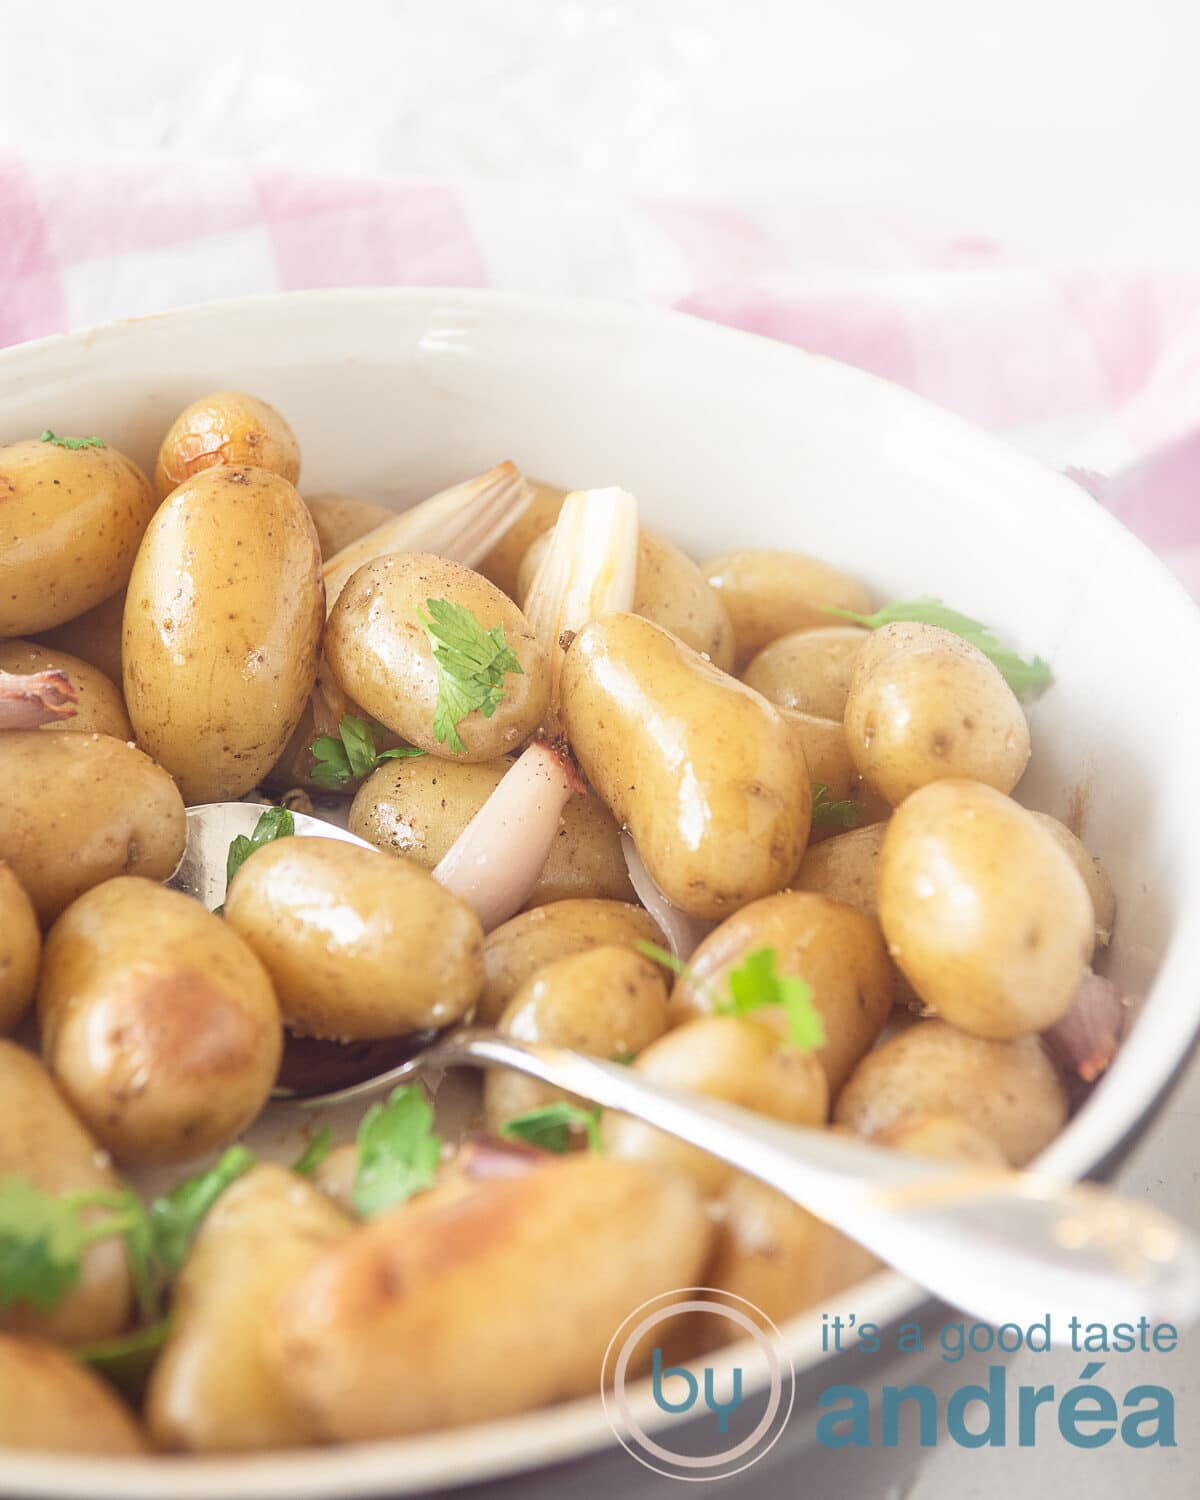 Roast potatoes with thyme, shallots and garlic